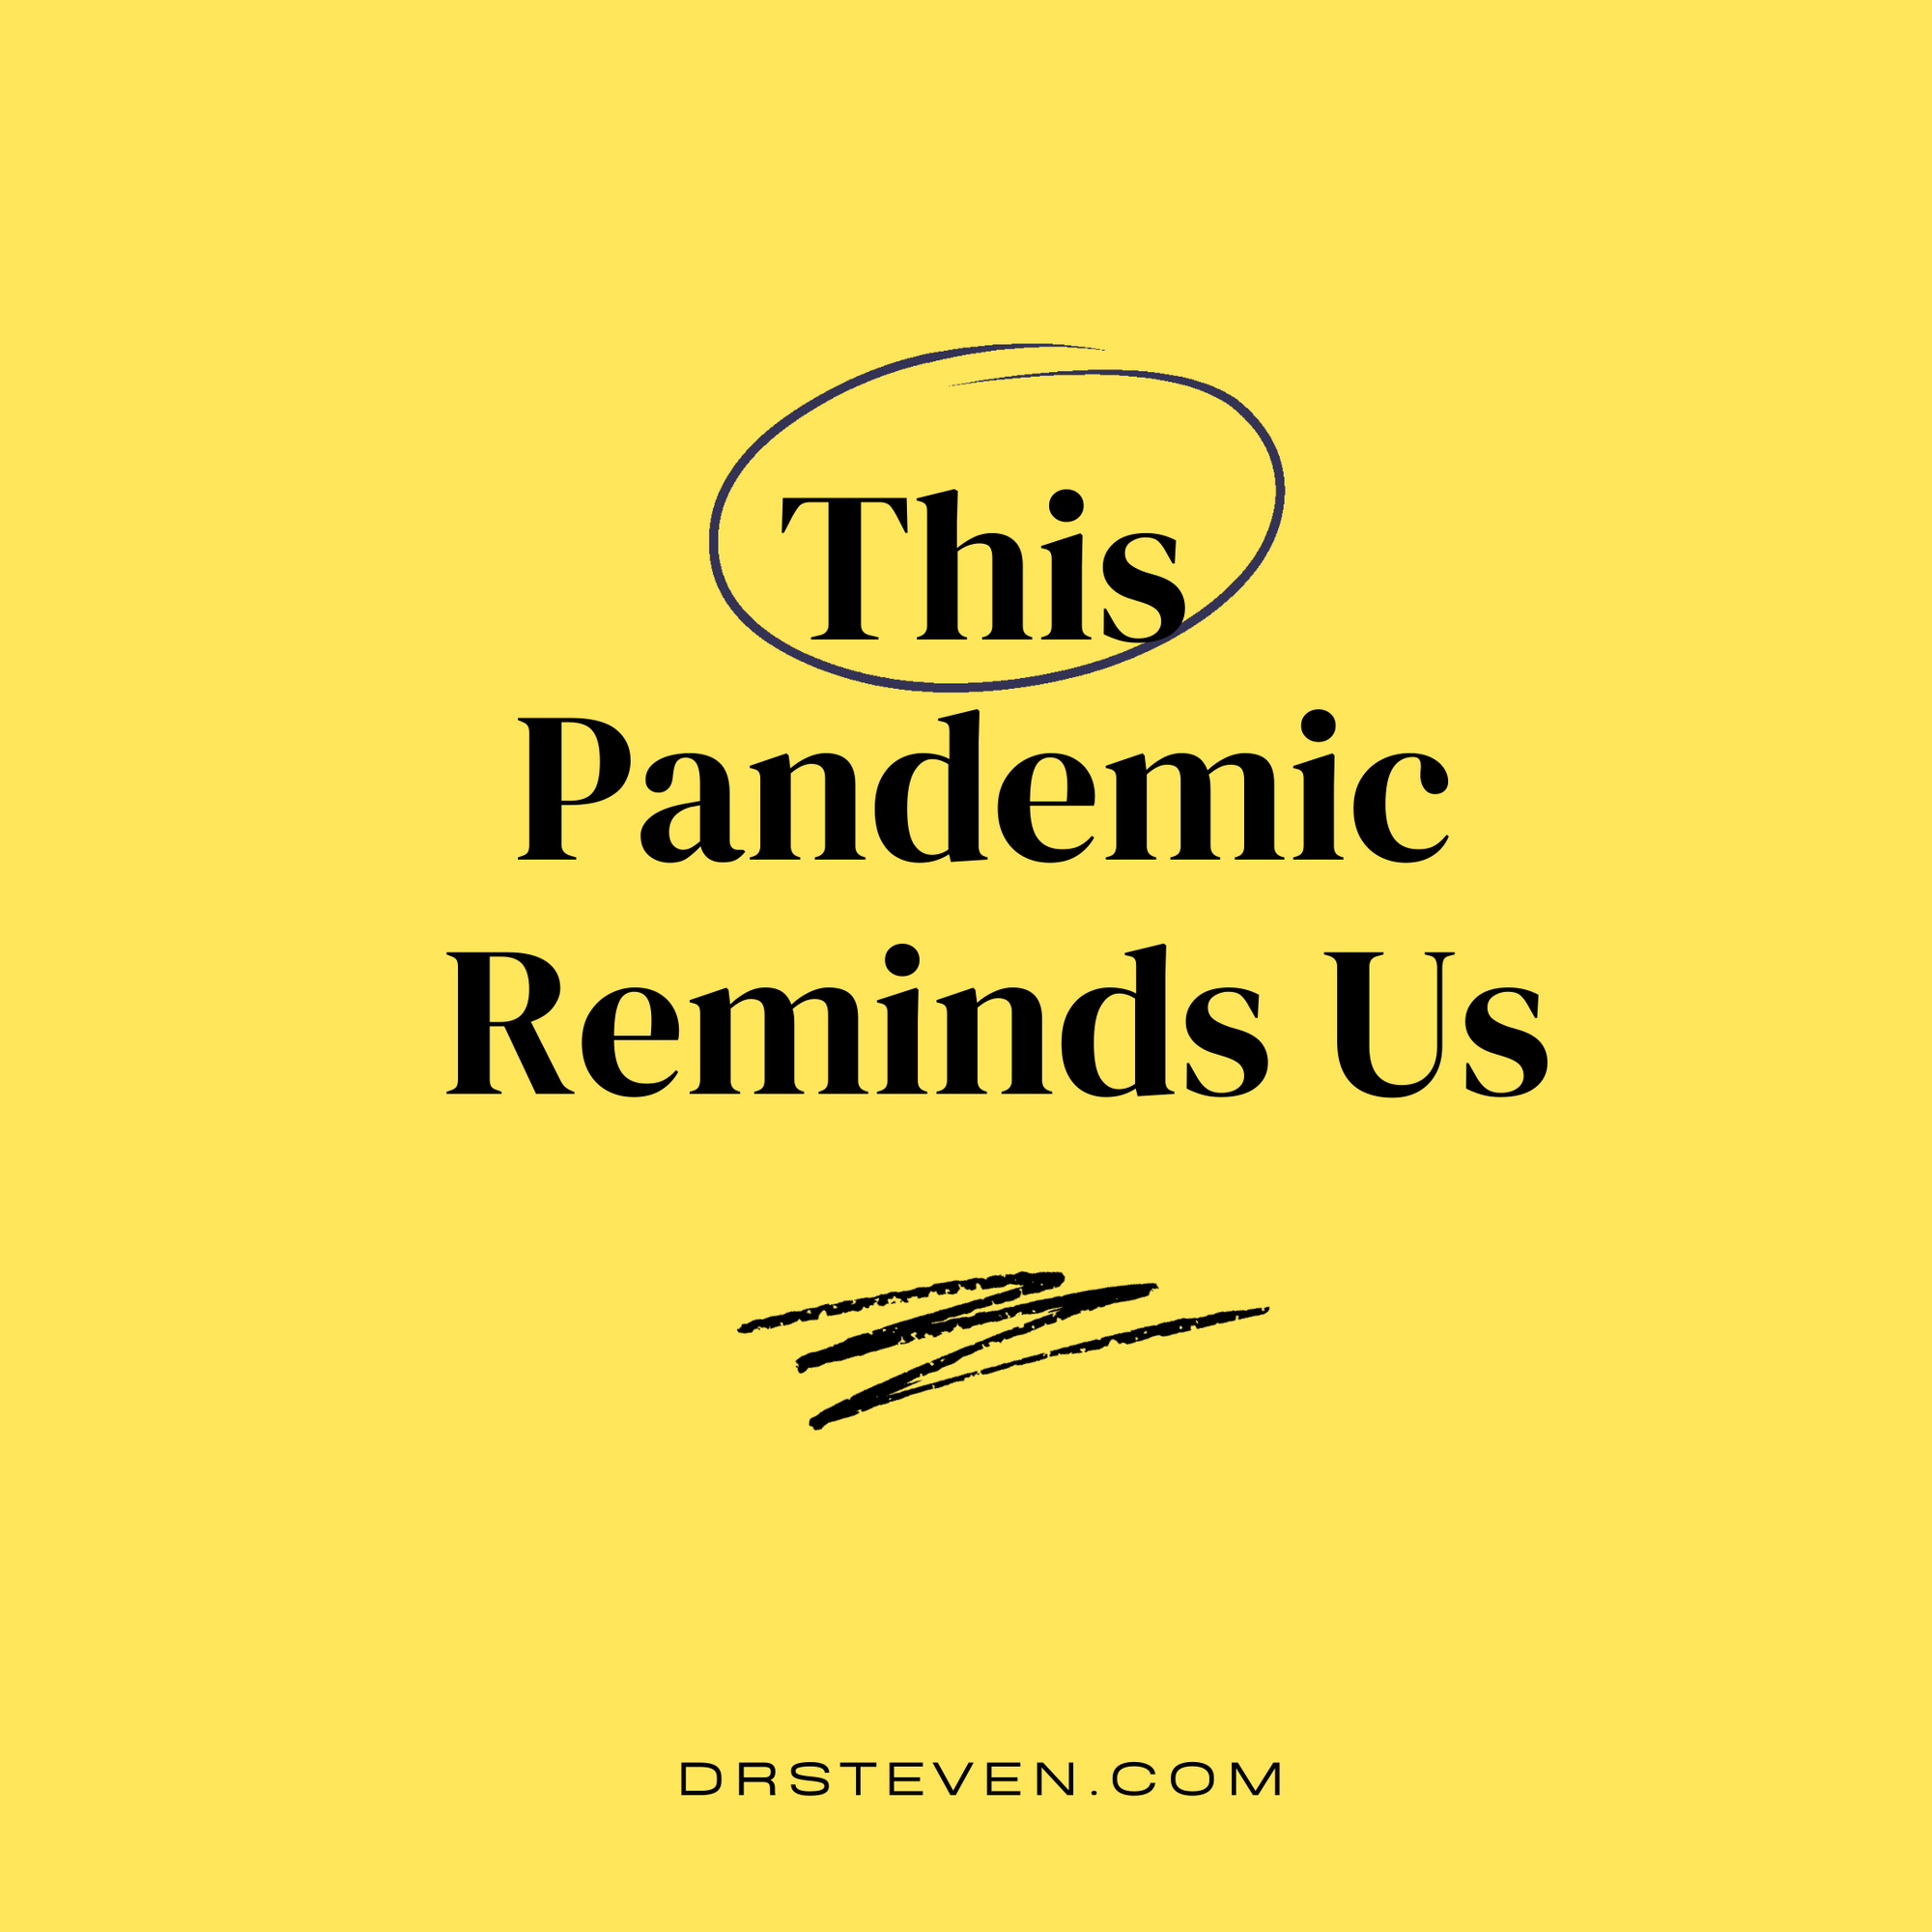 This Pandemic Reminds Us